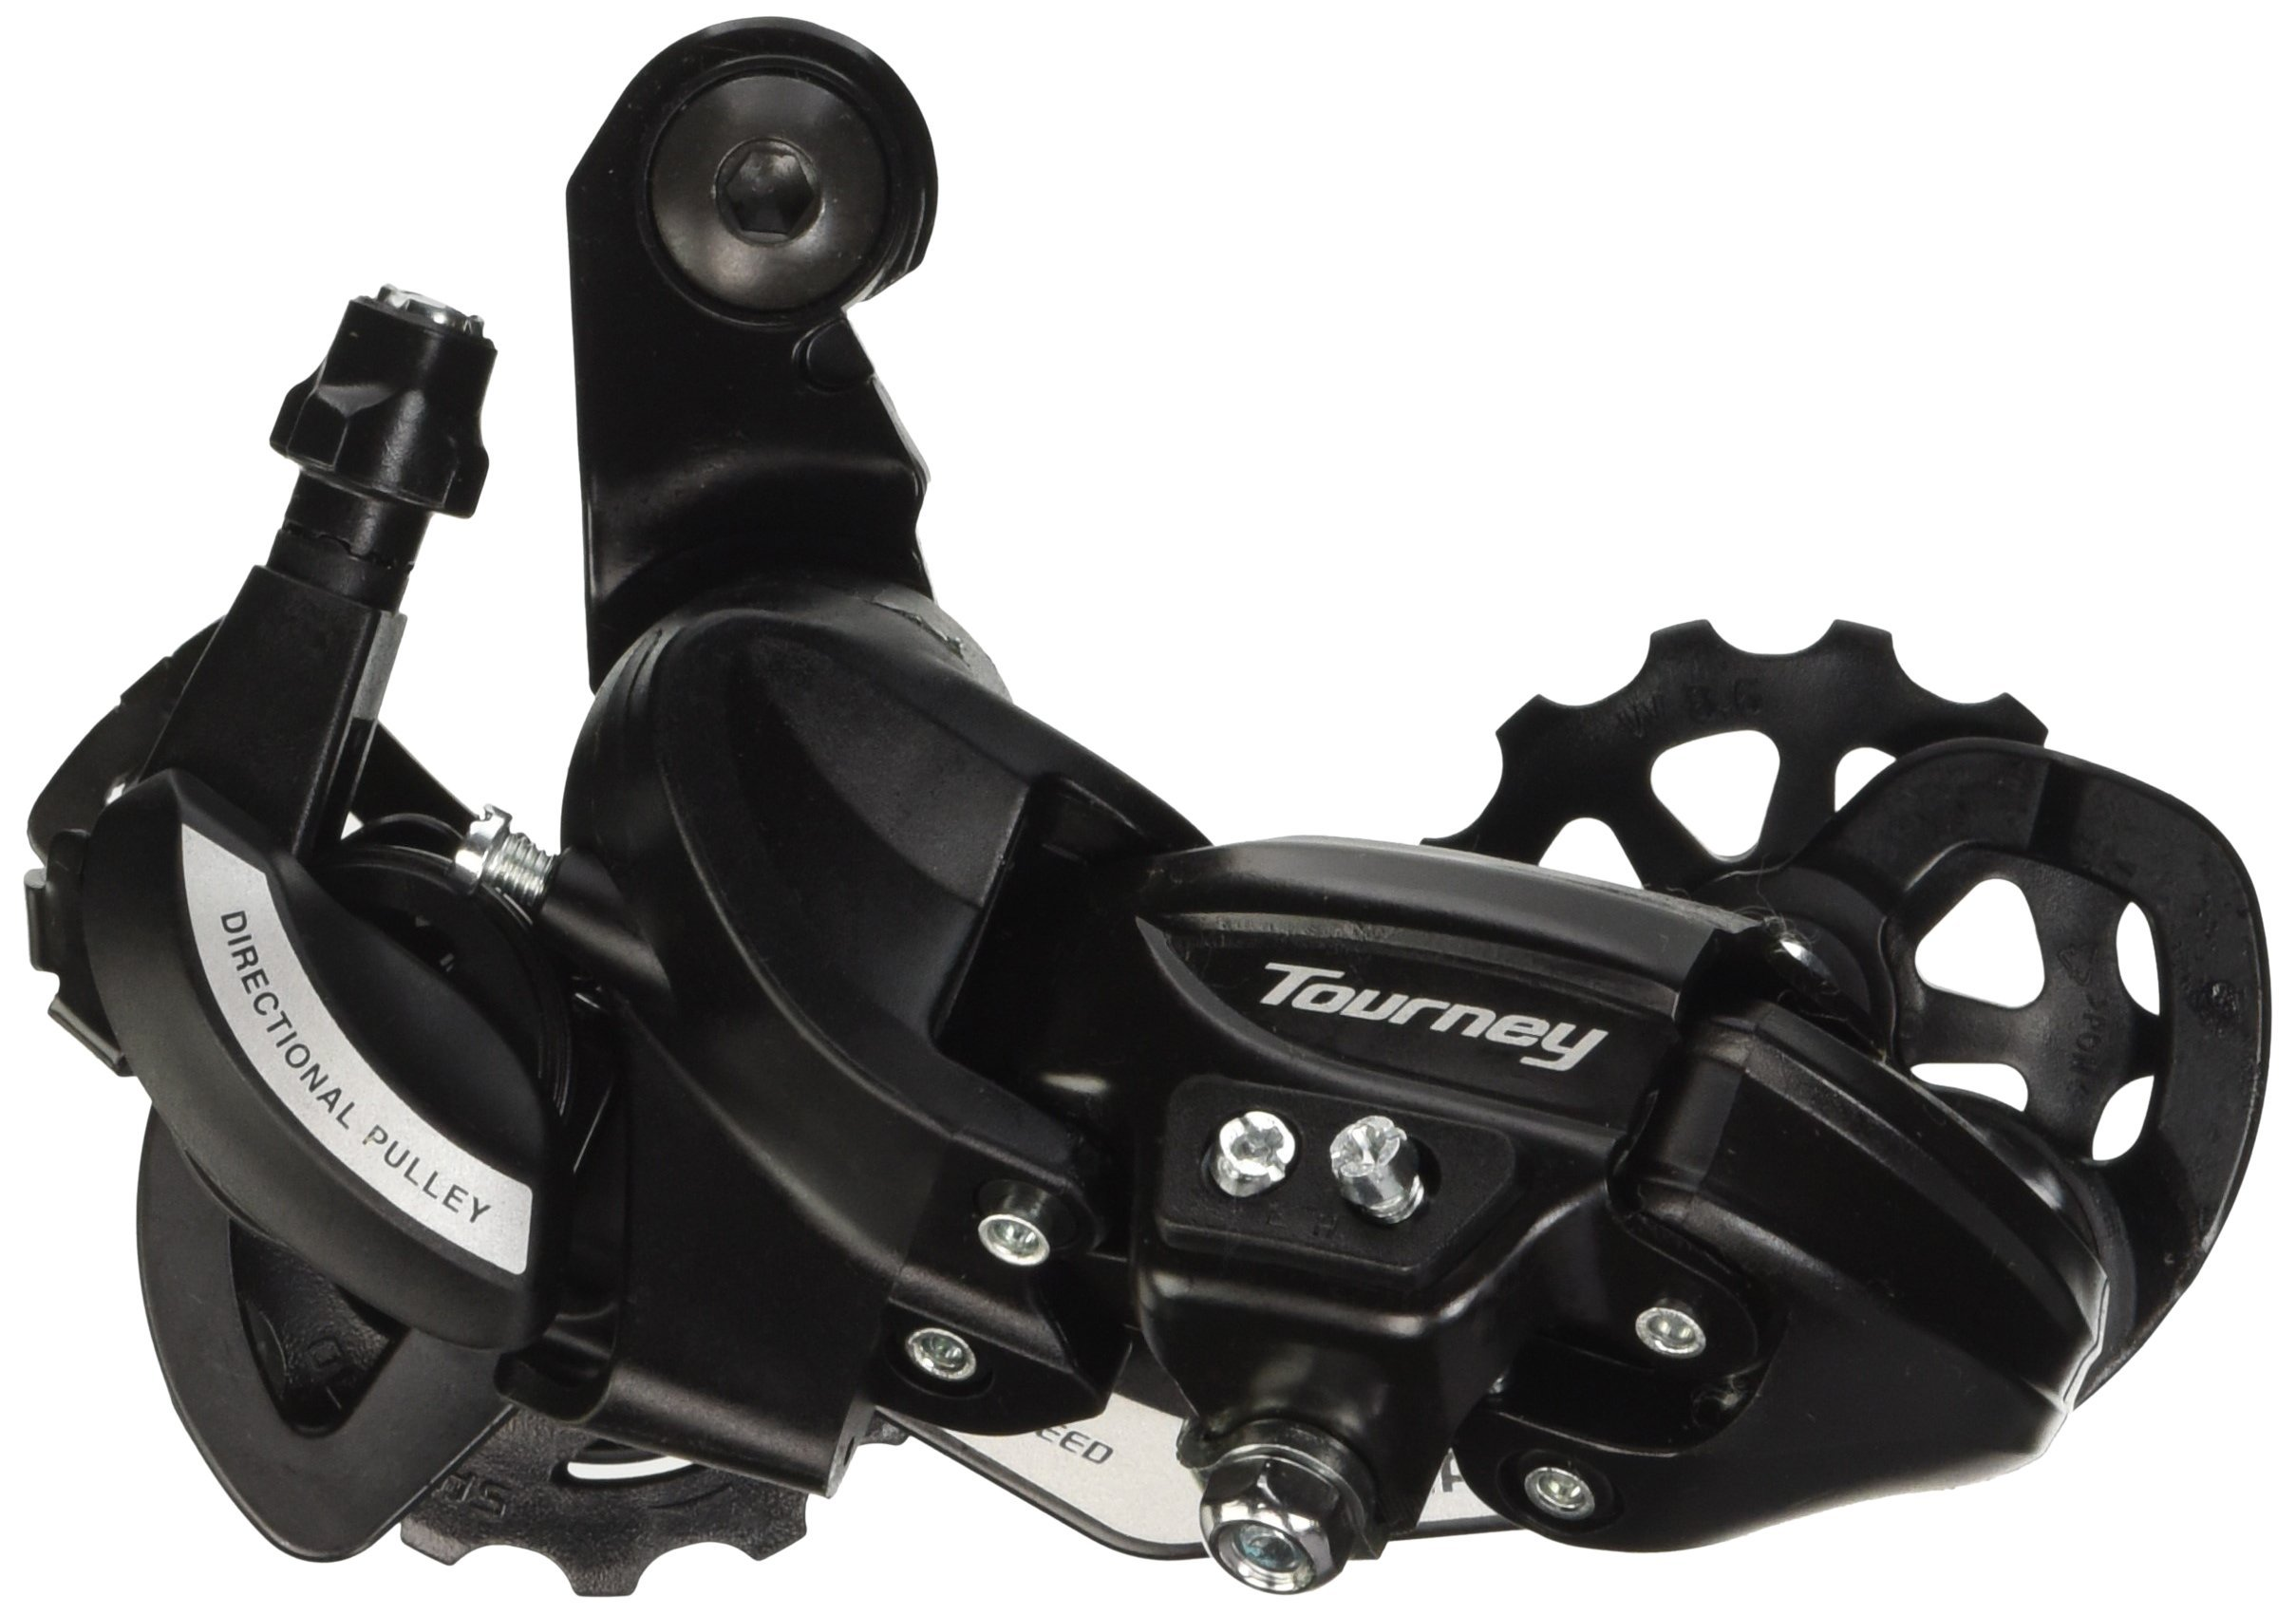 SHIMANO Tourney TY500 6/7-Speed Rear Derailleur by SHIMANO